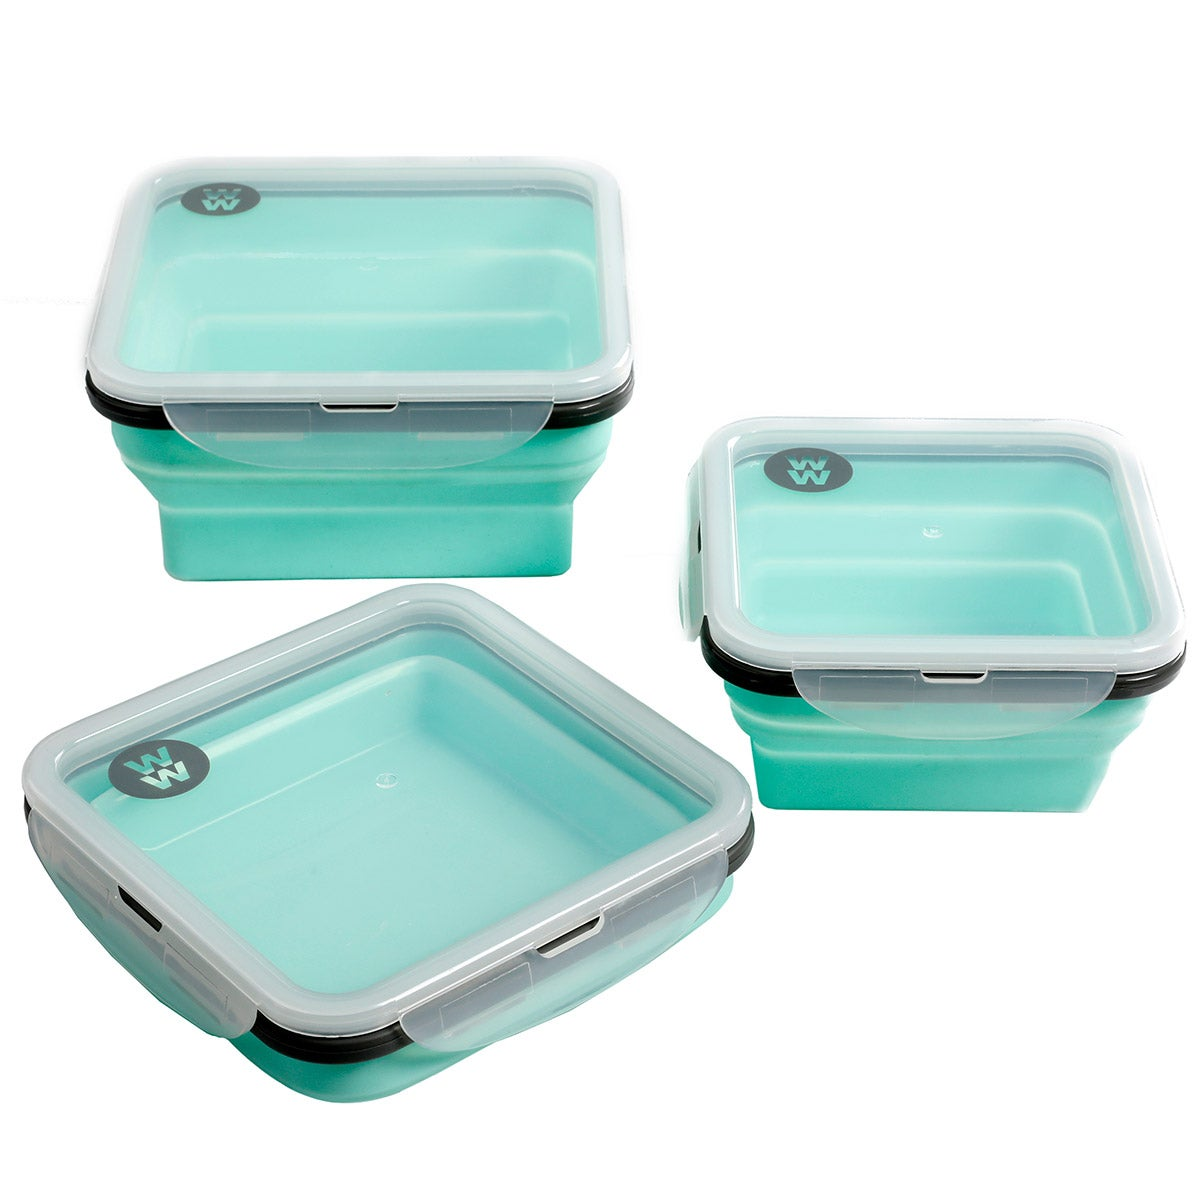 3-Piece Collapsible Silicone Lunch Containers